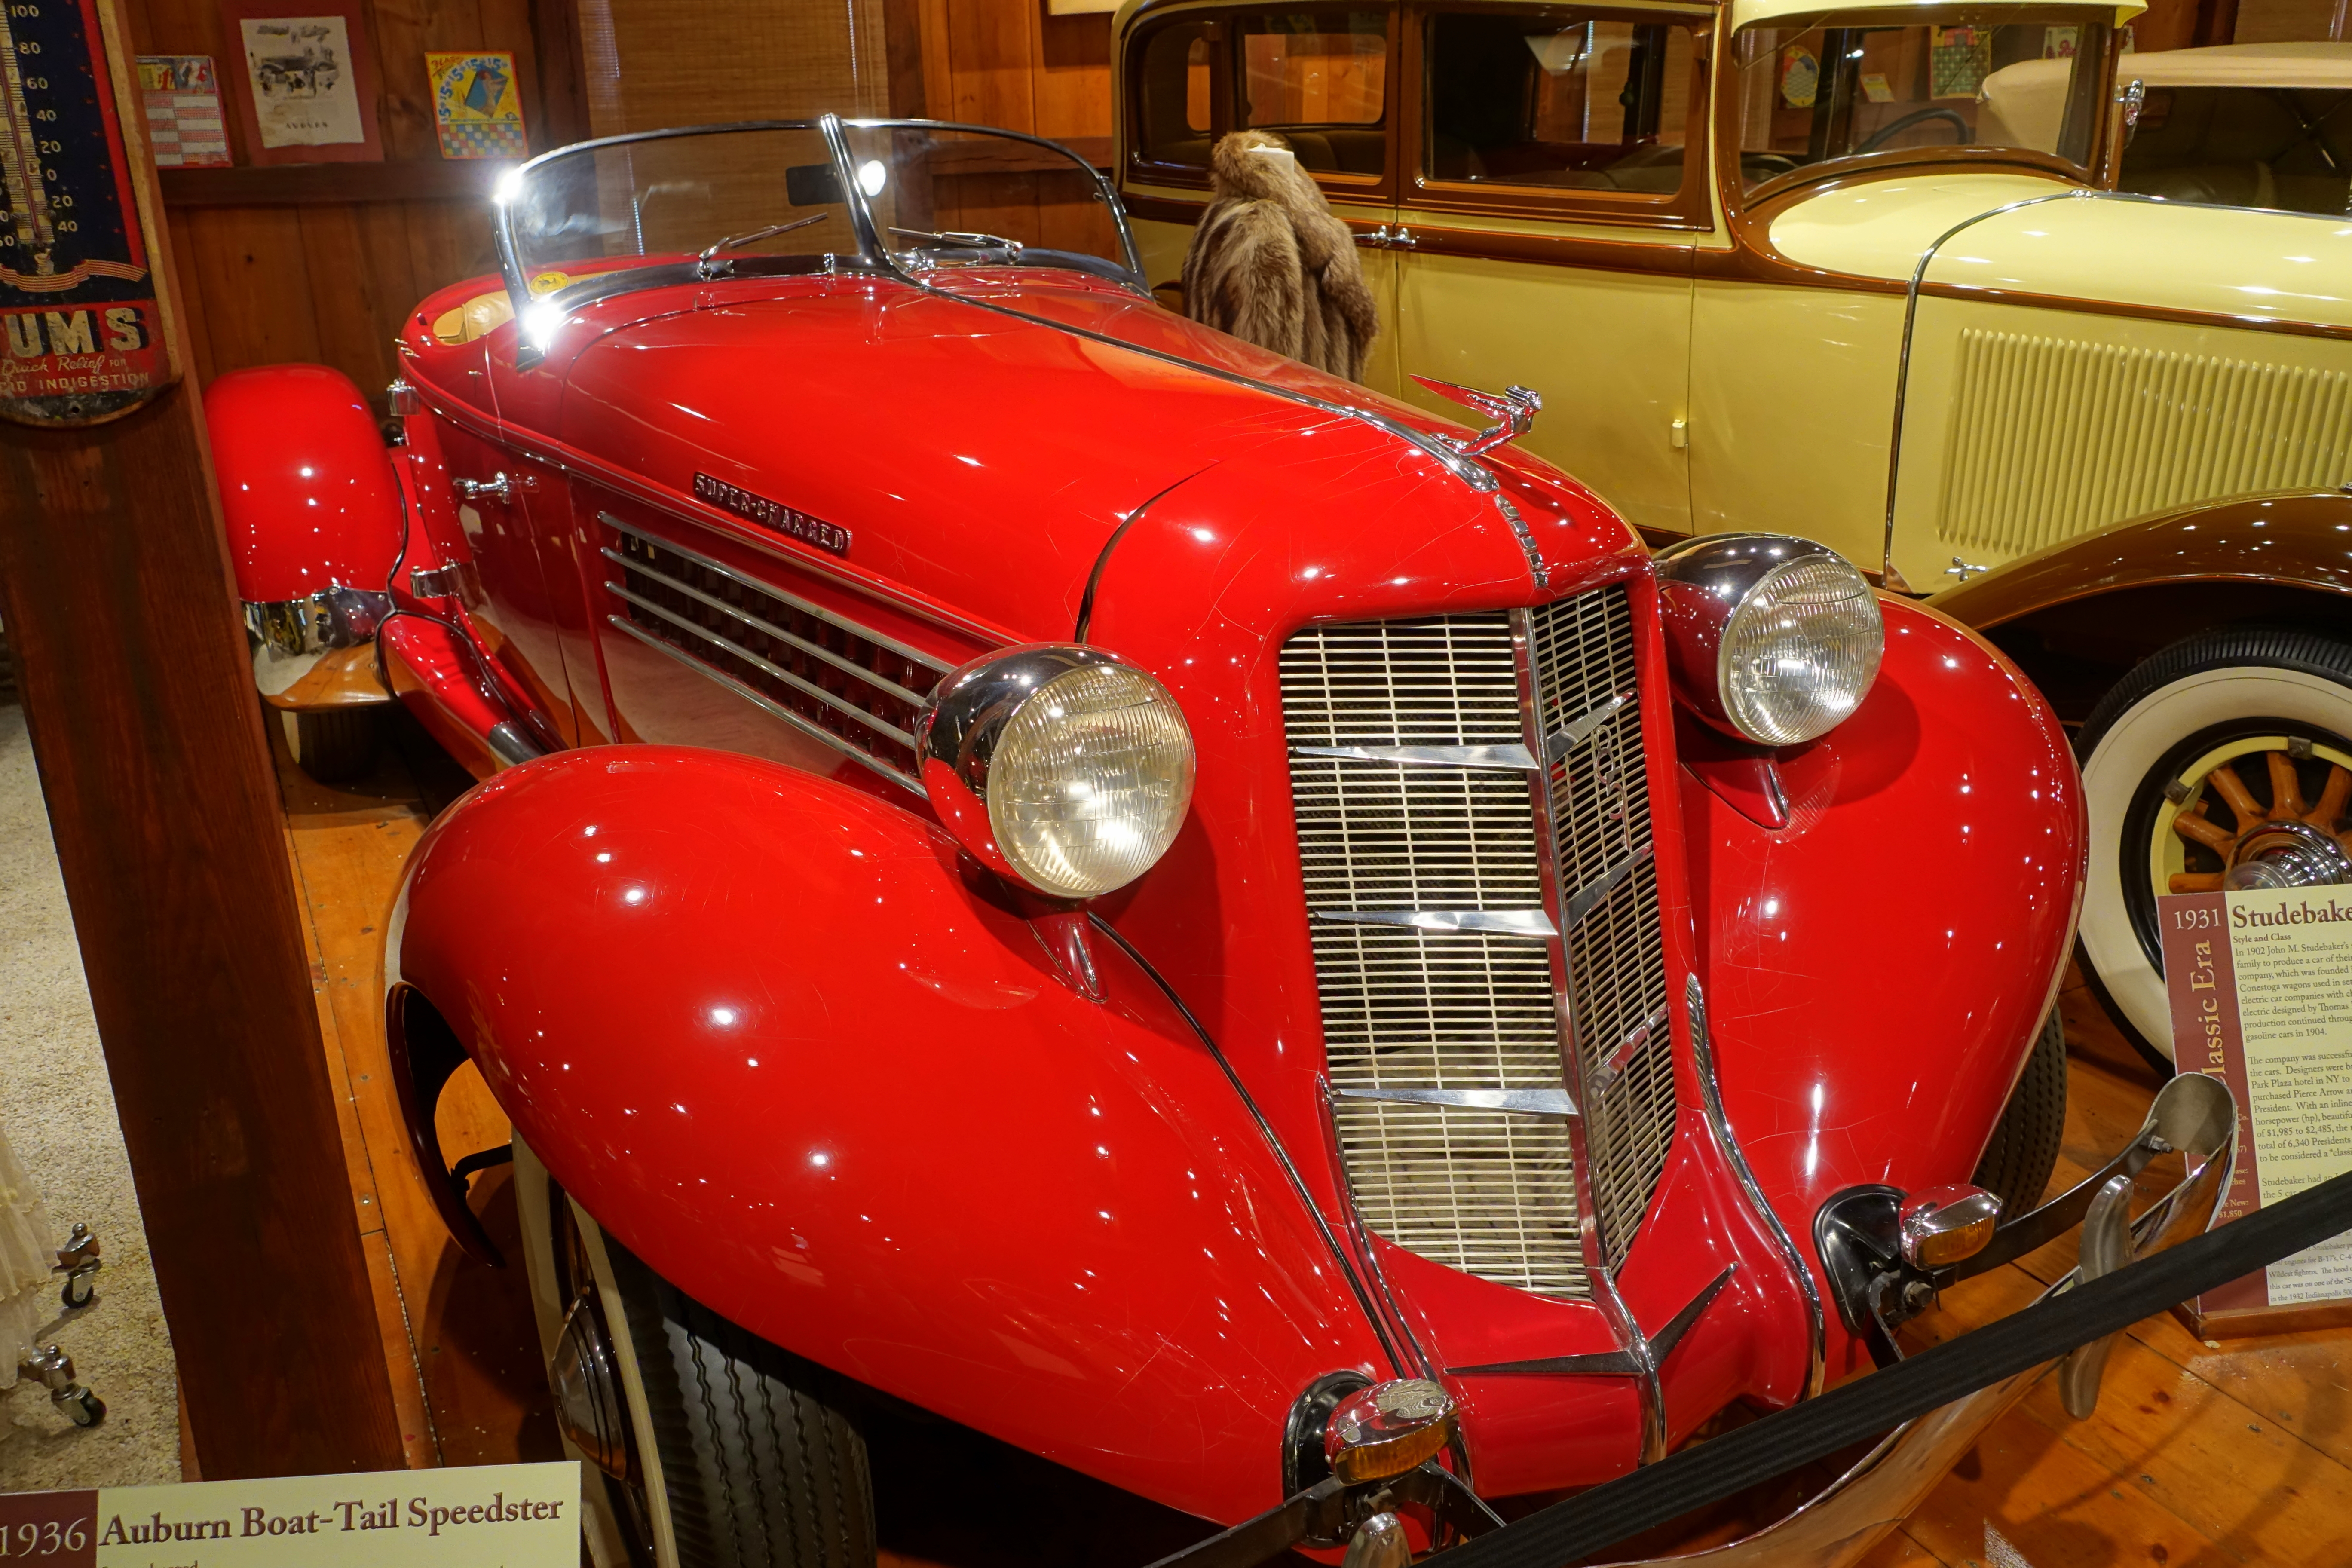 File:1936 Auburn Boat-Tail Speedster - Collings Foundation